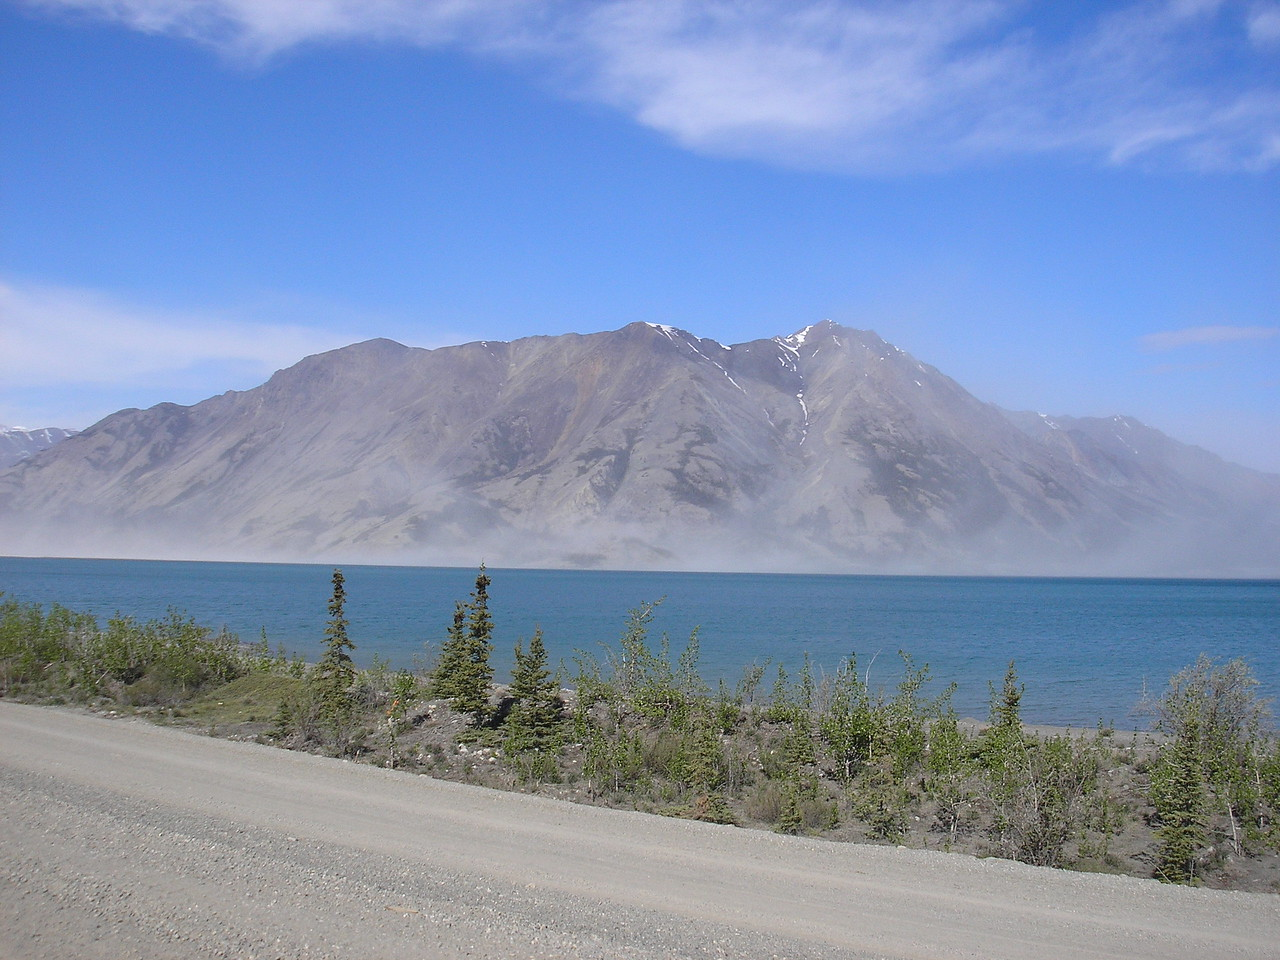 This is the beautiful Lake Kluane, Destruction bay is on this lake.  It is called this because a pontoon bridge was destroyed in a storm when they were building the Alaska Highway in 1942.